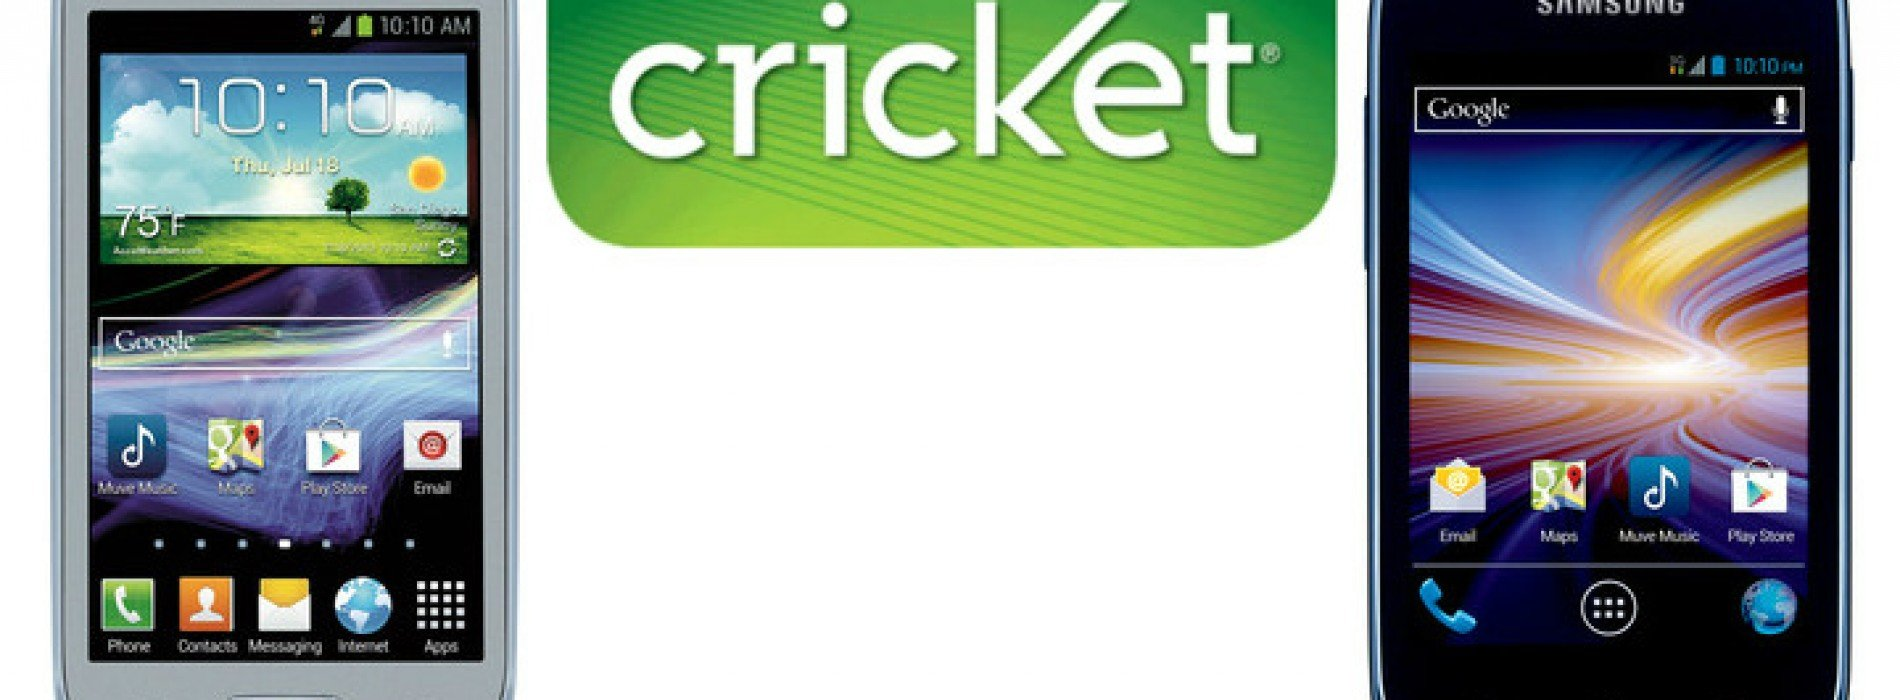 Cricket Wireless announces Samsung Galaxy Discover, Samsung Galaxy Admire II